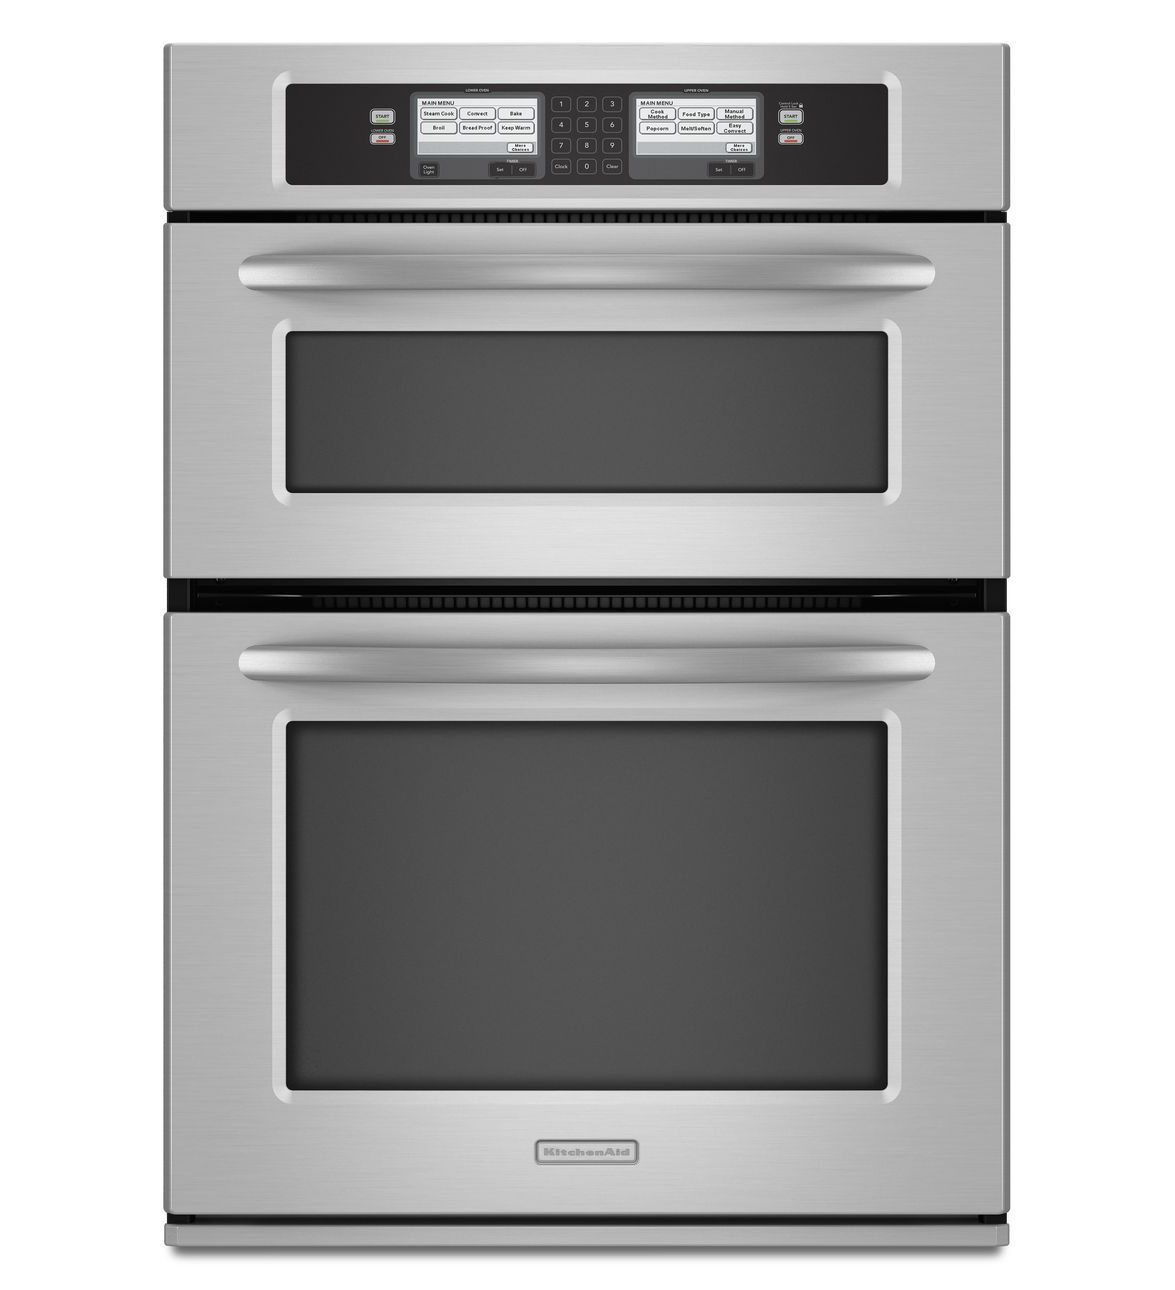 30 Inch Steam Assist Combination Microwave Wall Oven Architect Series Ii Kehu309sss Stainless Steel Wall Oven Combination Wall Oven Built In Microwave Oven